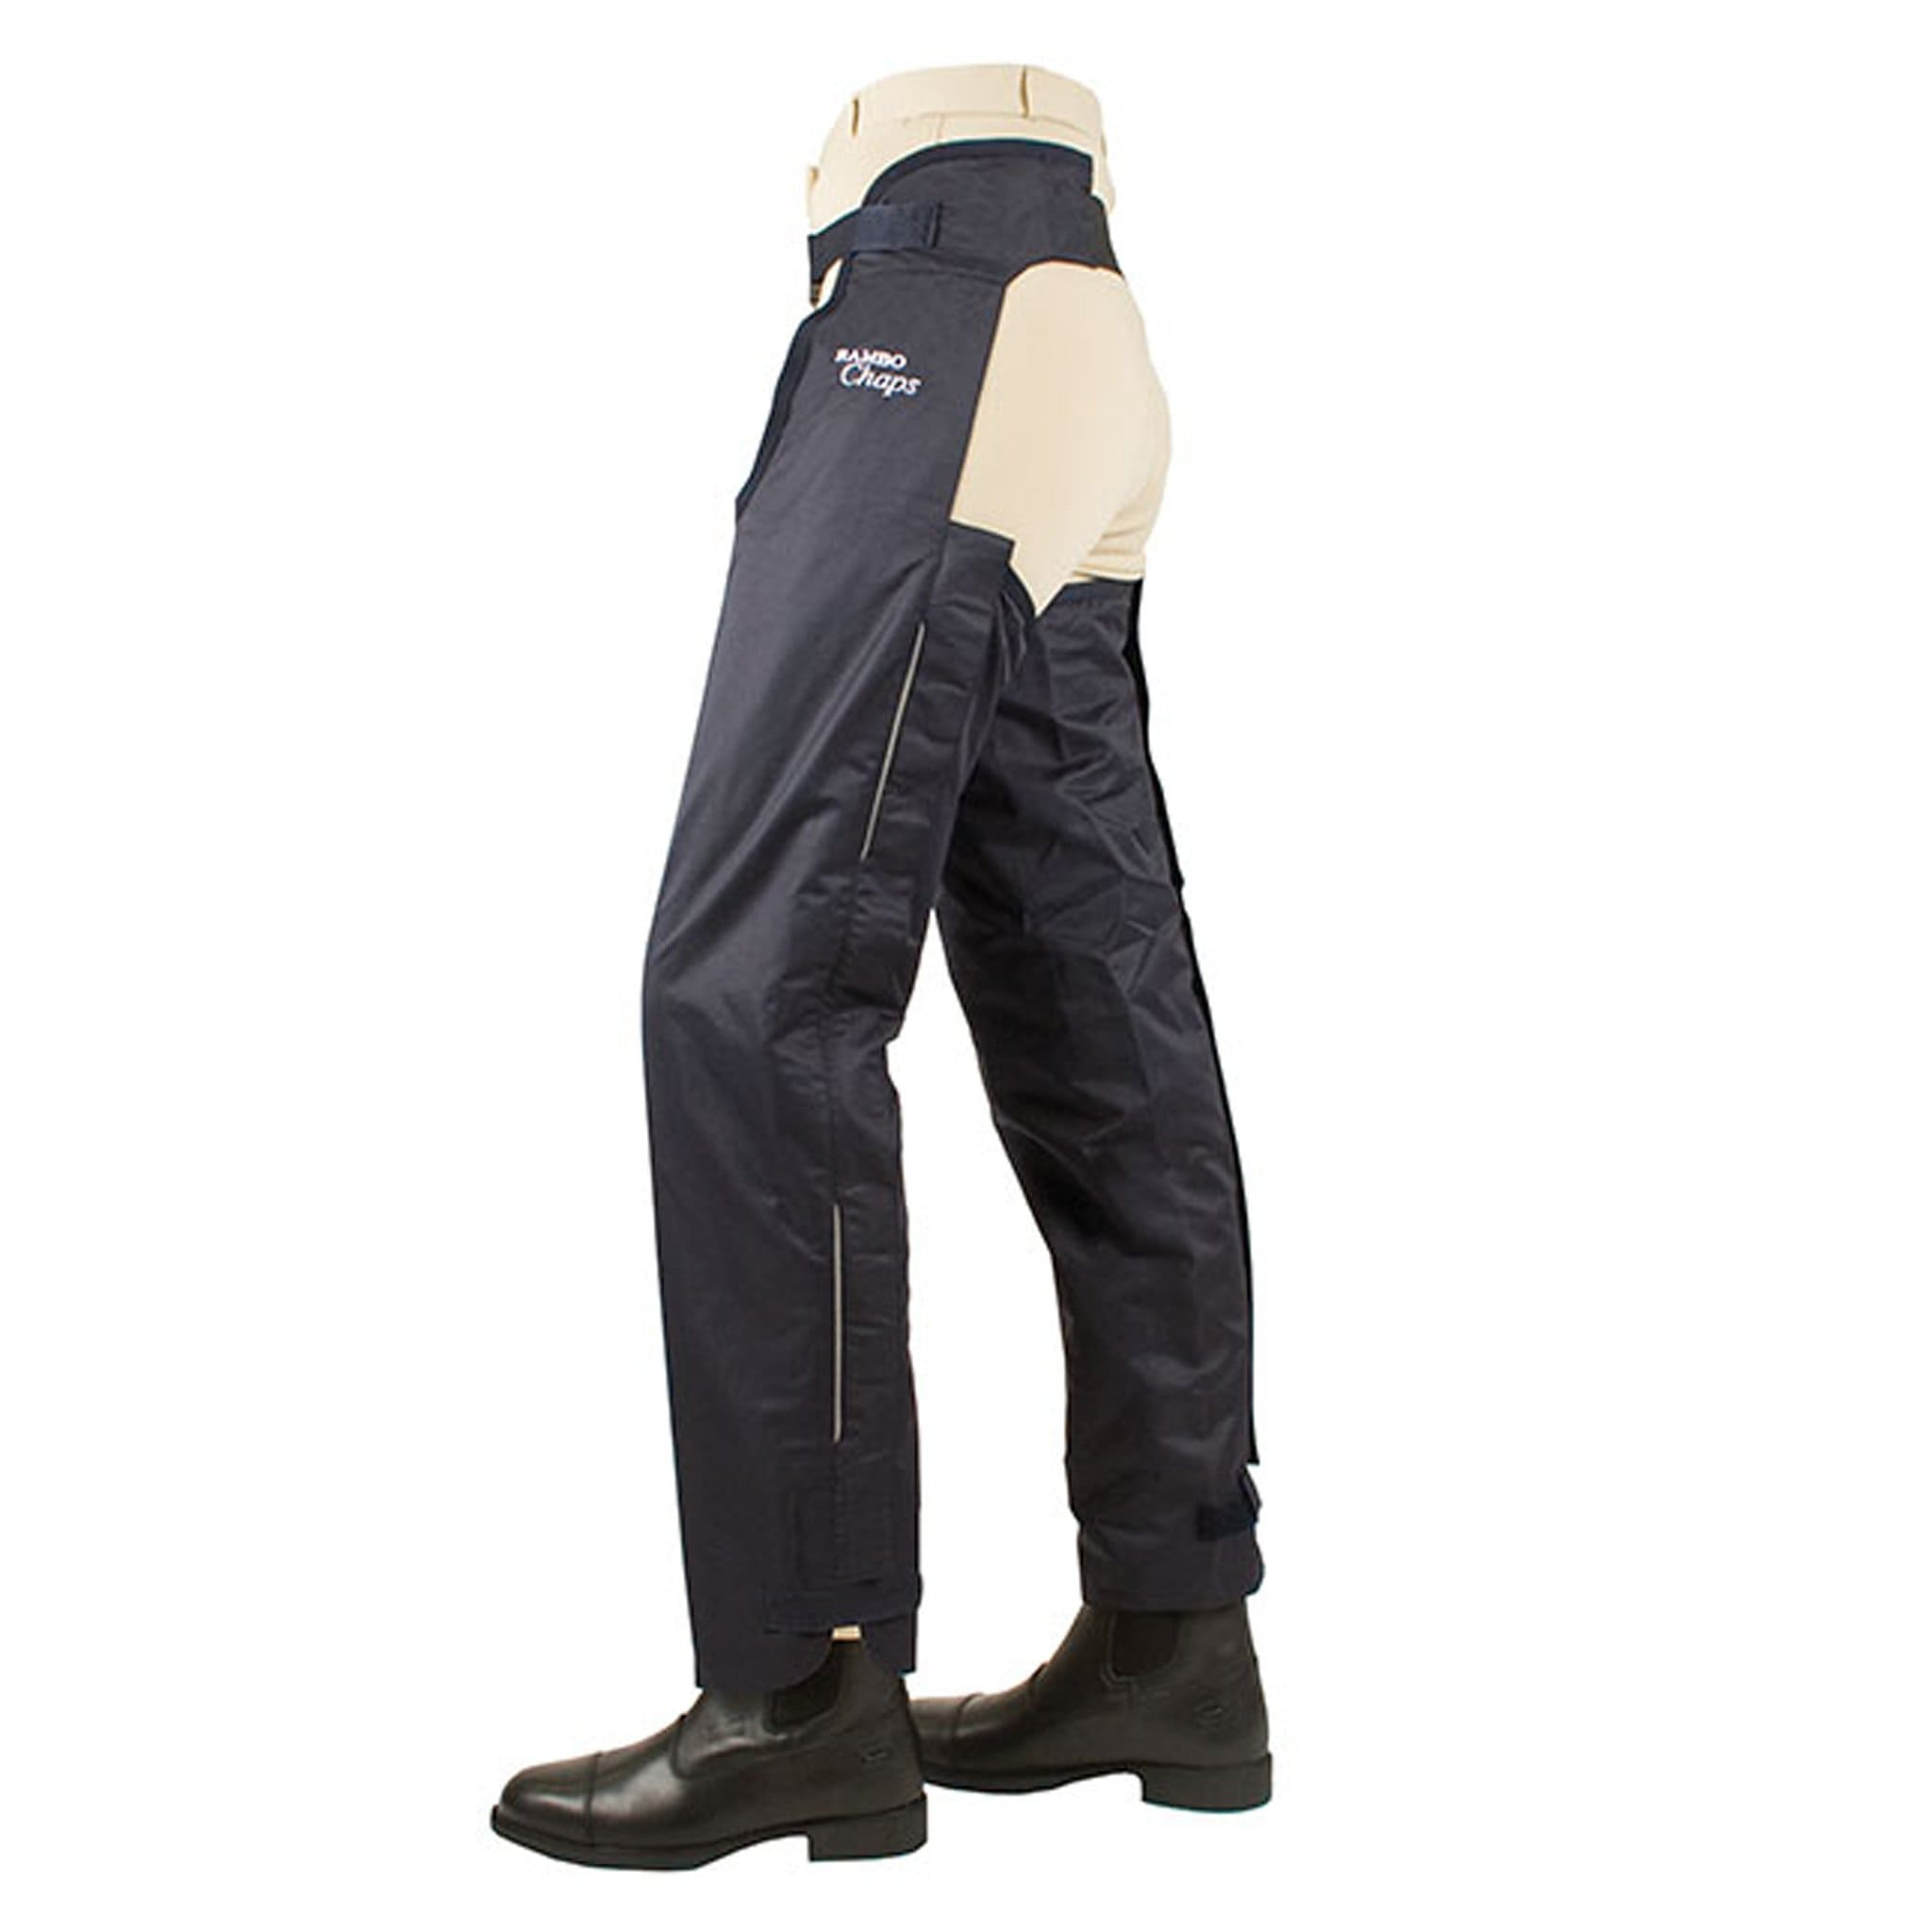 Horseware Rambo Full Leg Cotton Lined Chaps Navy CLAC0C.